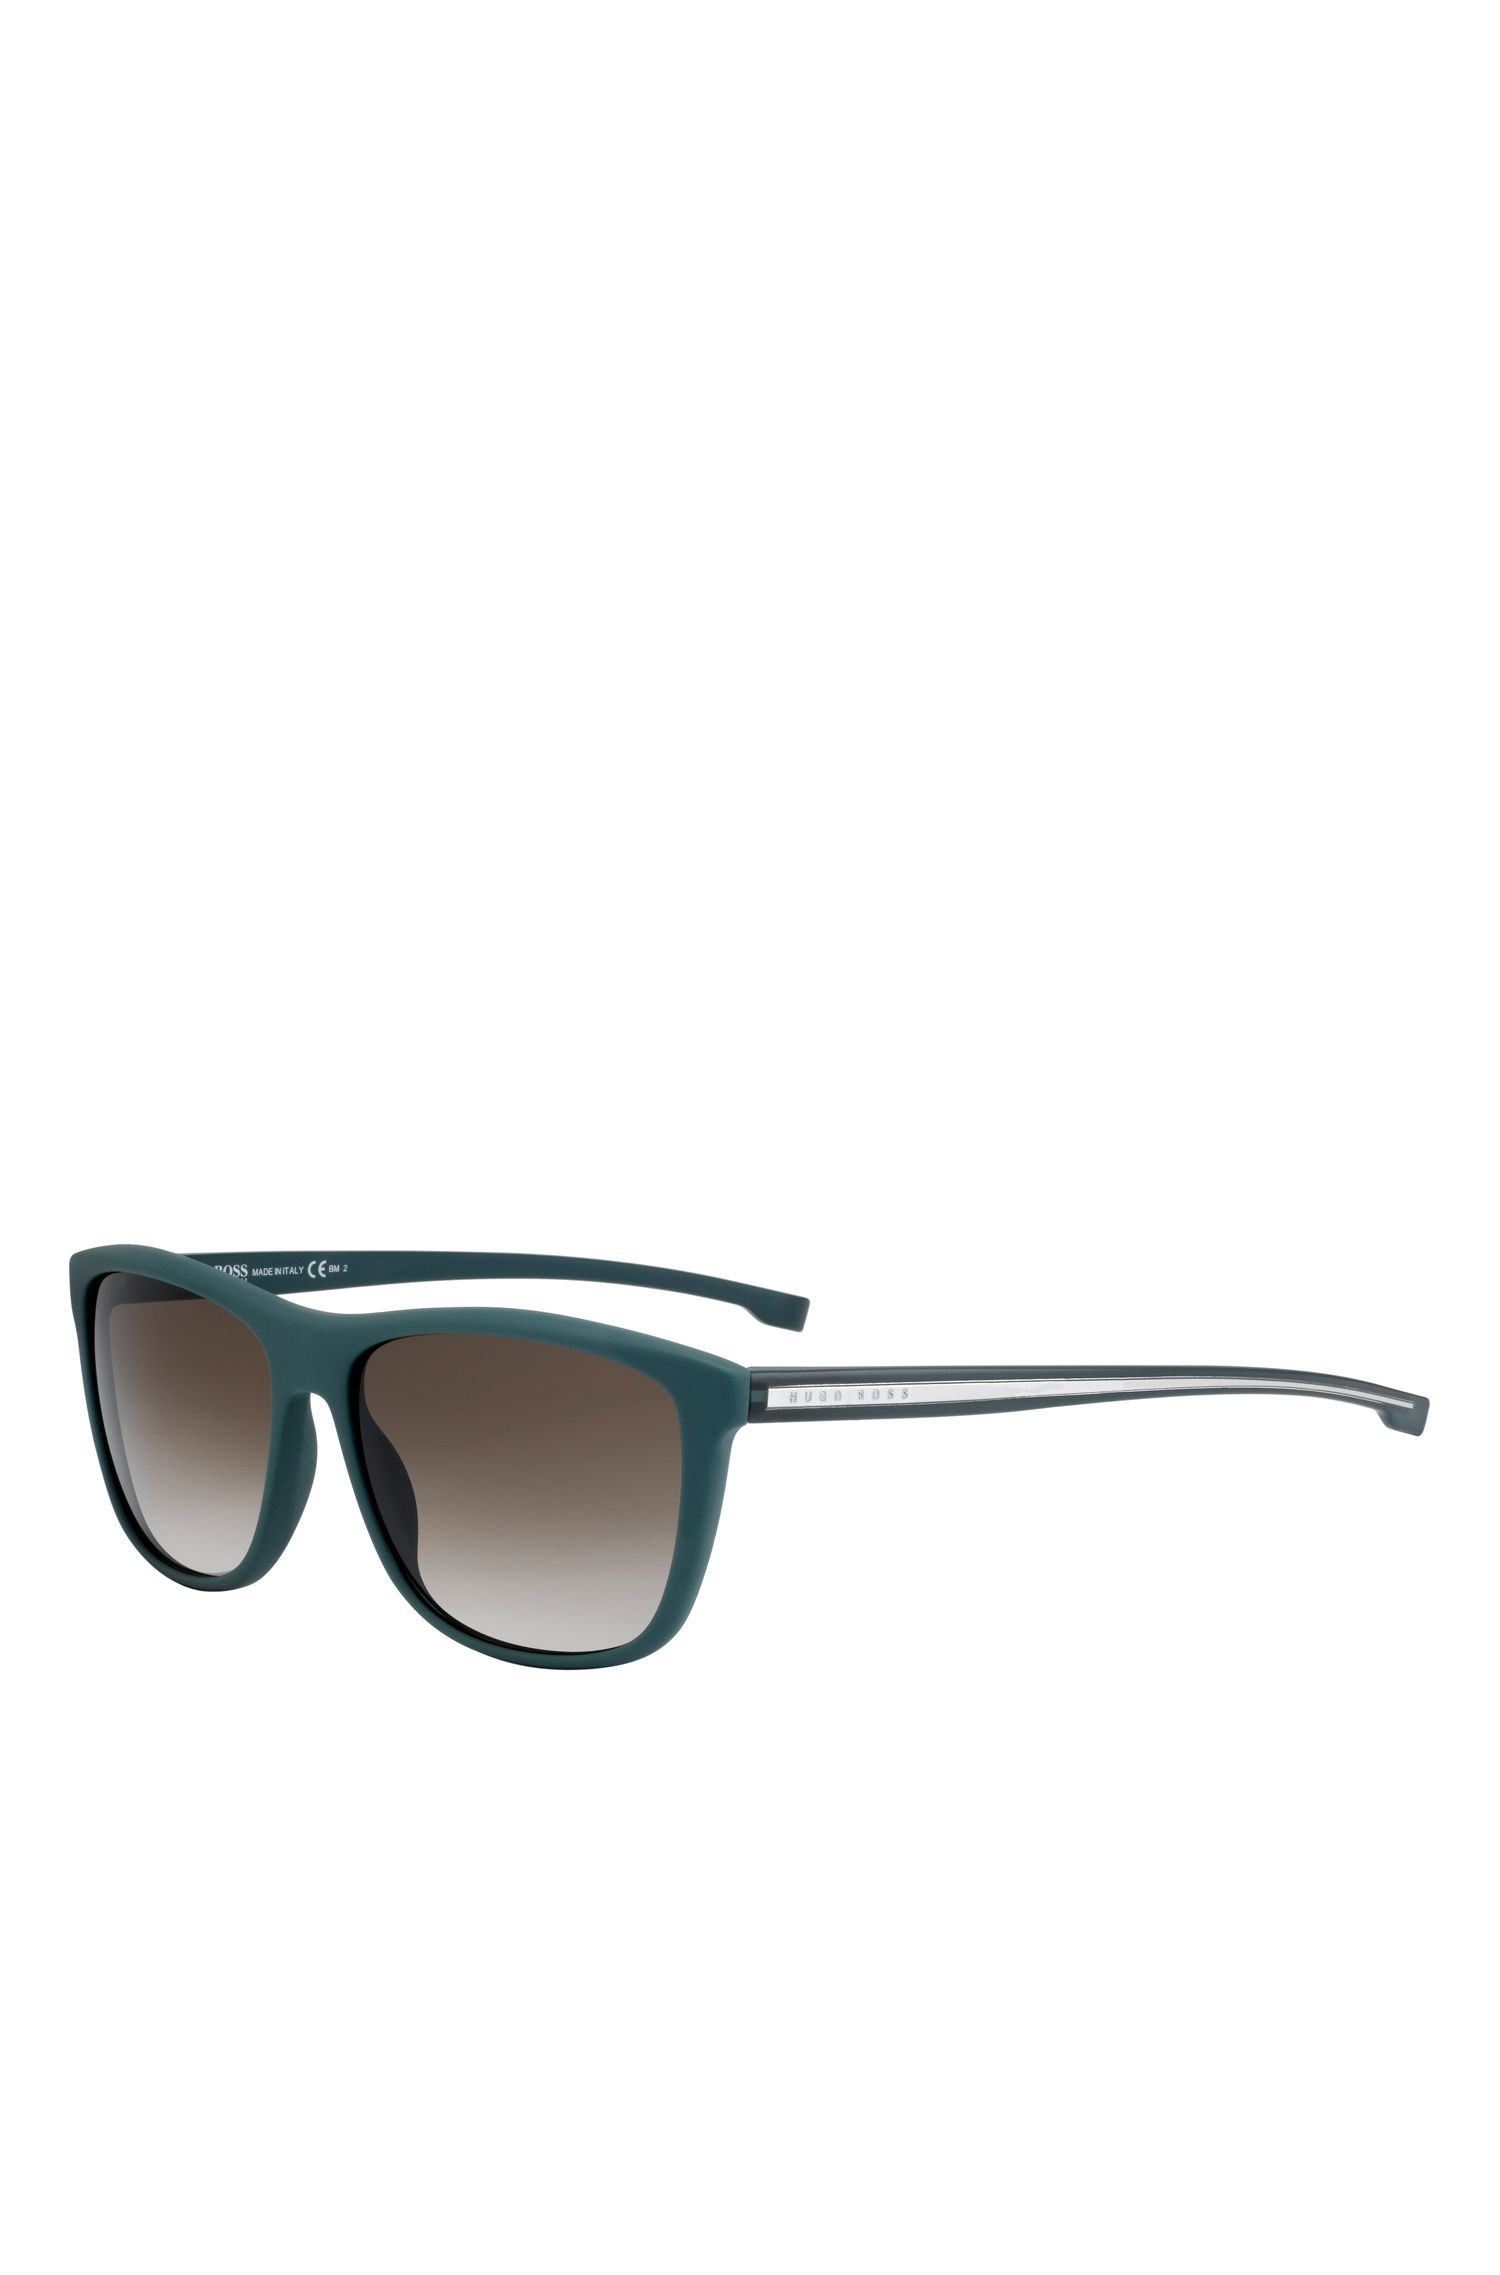 Gradient Lens Top Bar Sunglasses | BOSS 0874